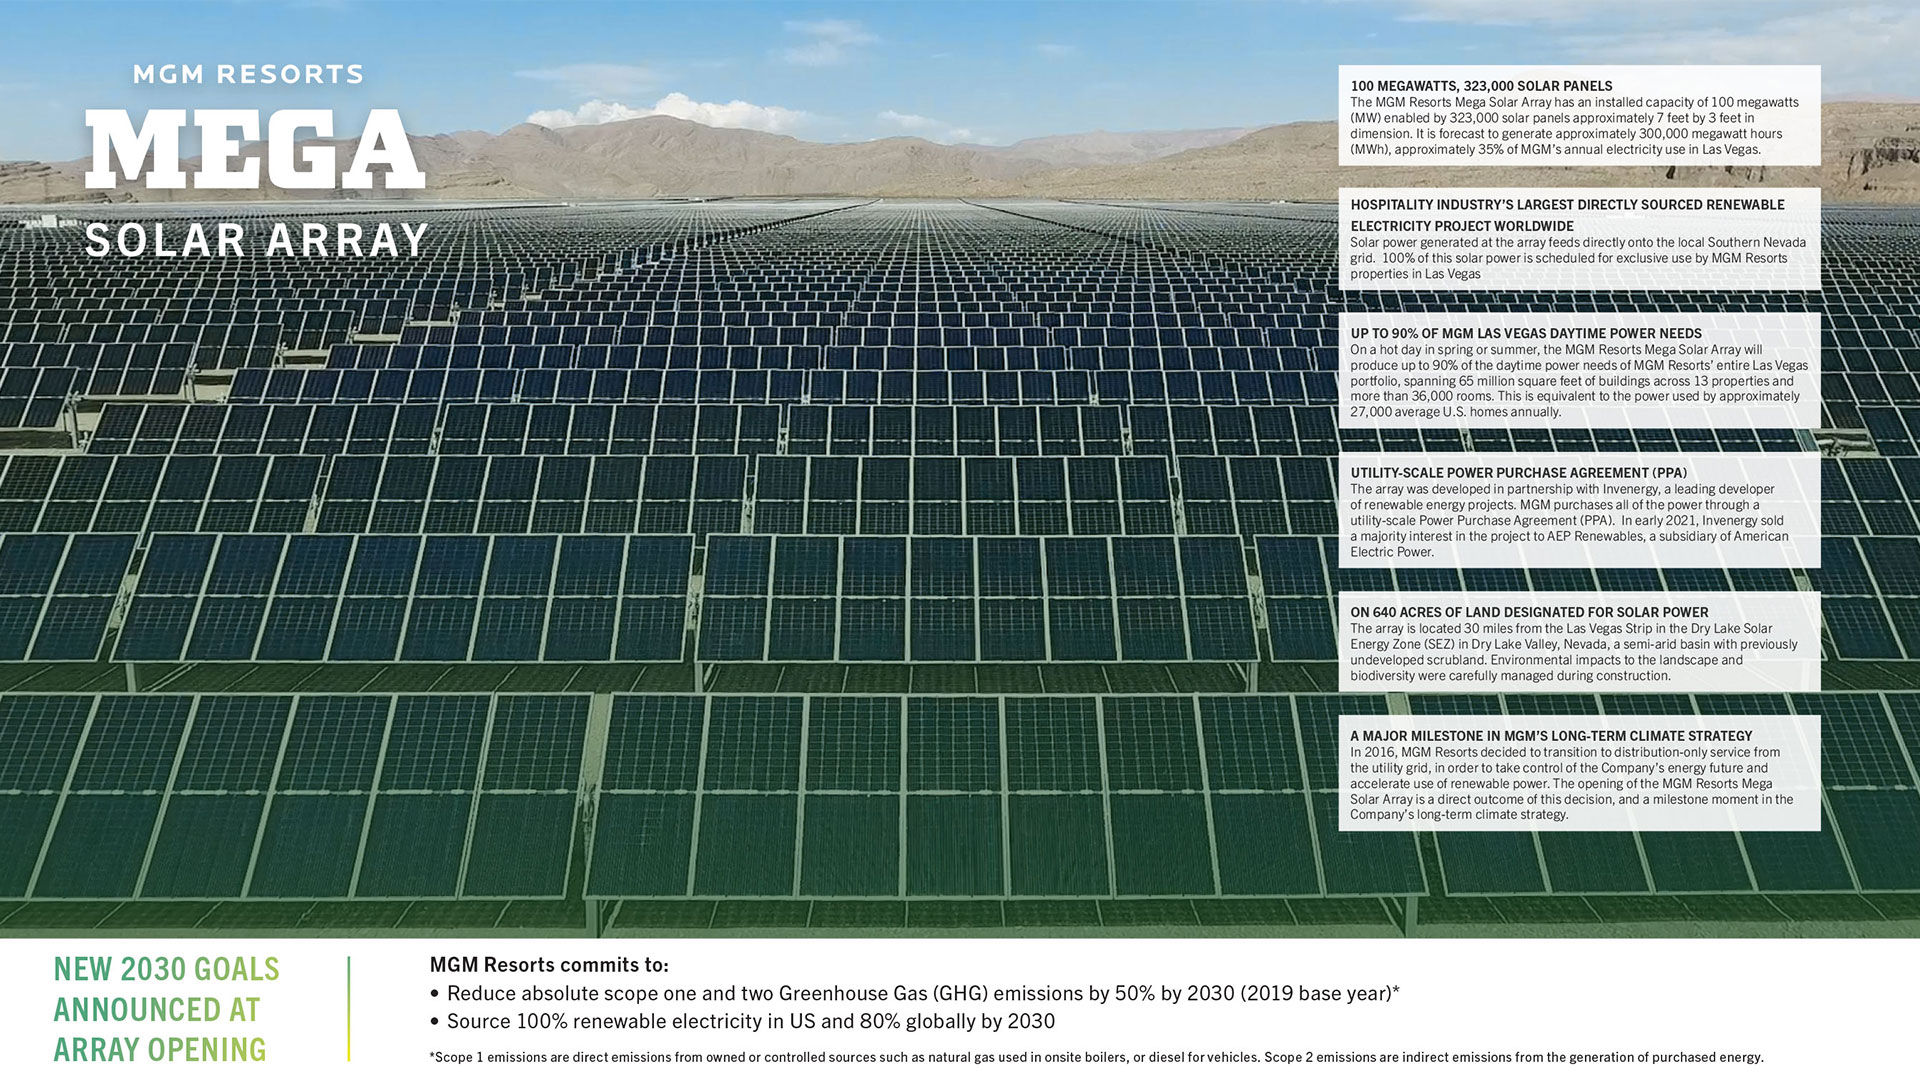 Learn more about MGM Resorts' 100MW solar array.